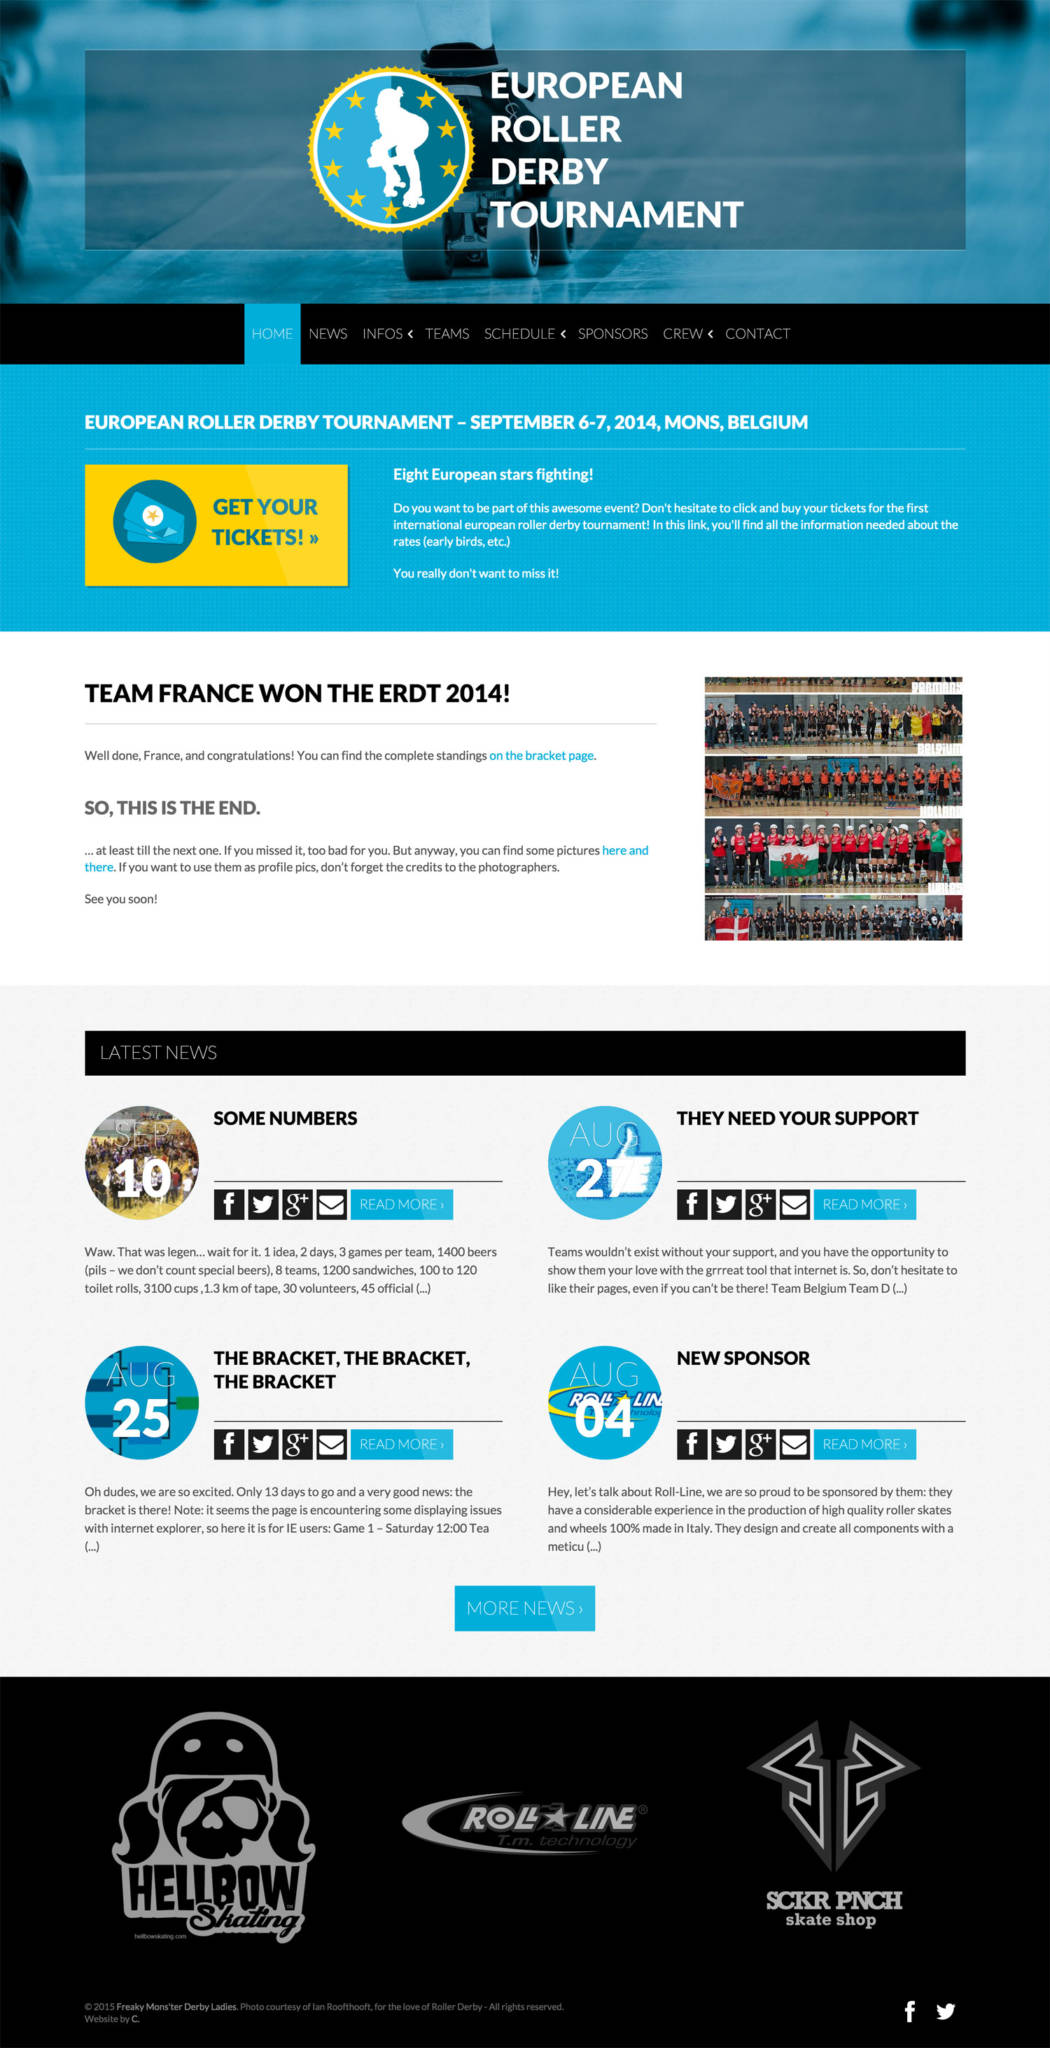 European roller derby tournament website - desktop